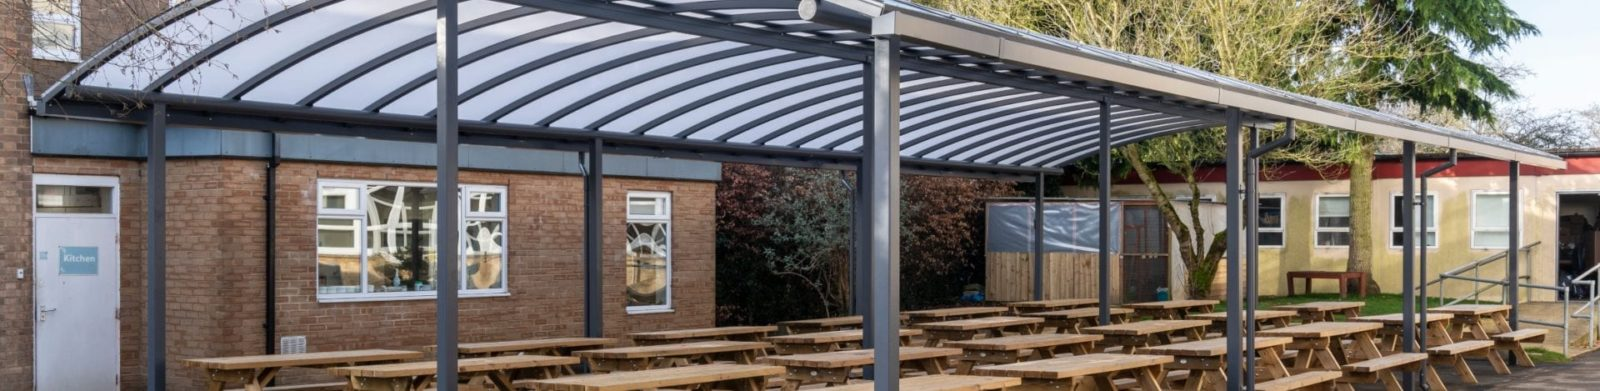 Dining area shelter we made for Cirencester College